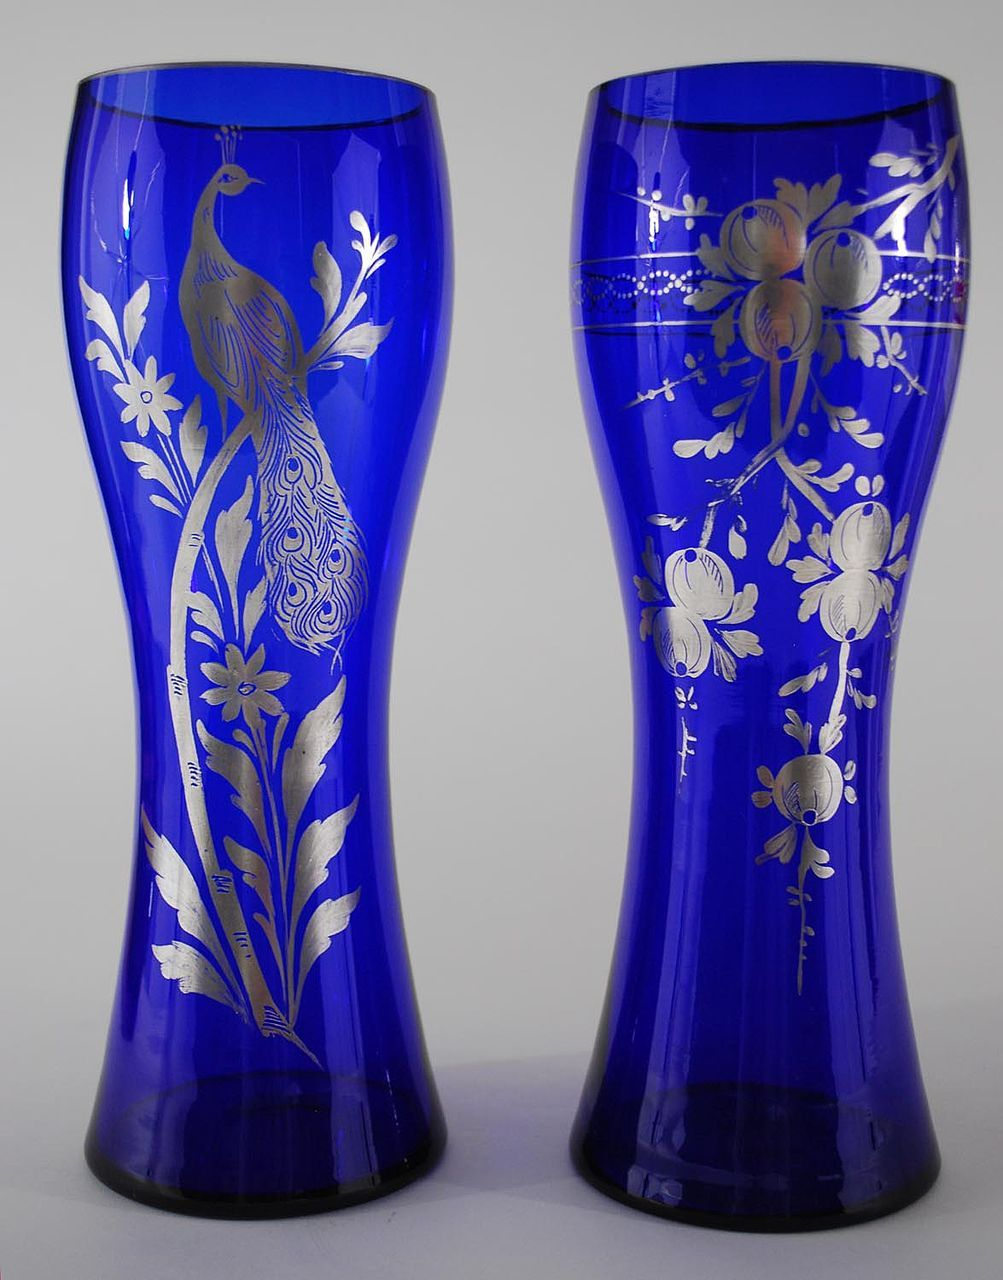 A pair of cobalt blue vases with silver overlay czechoslovakia a pair of cobalt blue vases with silver overlay czechoslovakia vintage reviewsmspy